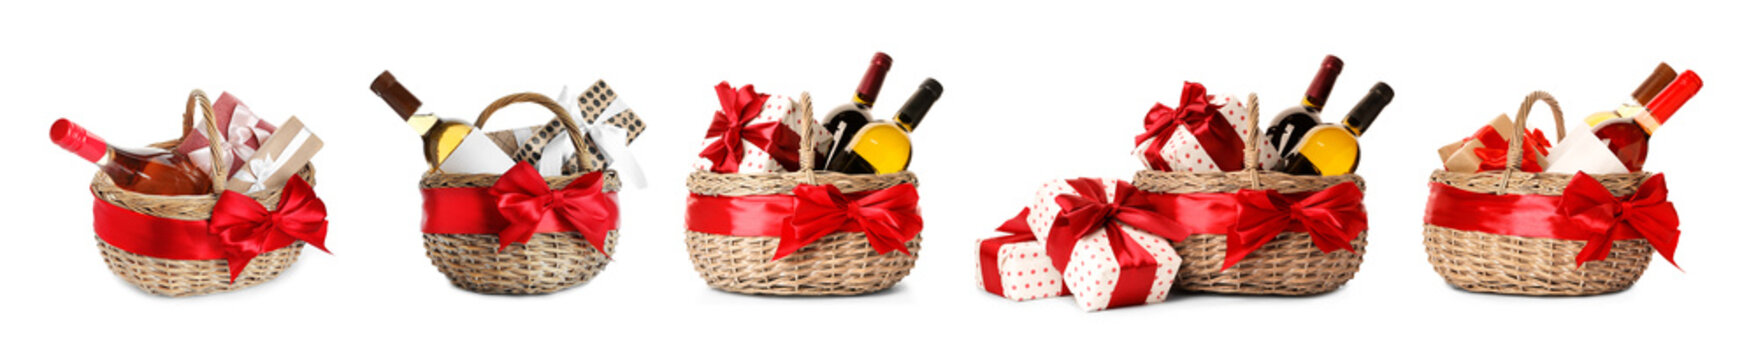 Set with gift baskets and wine on white background